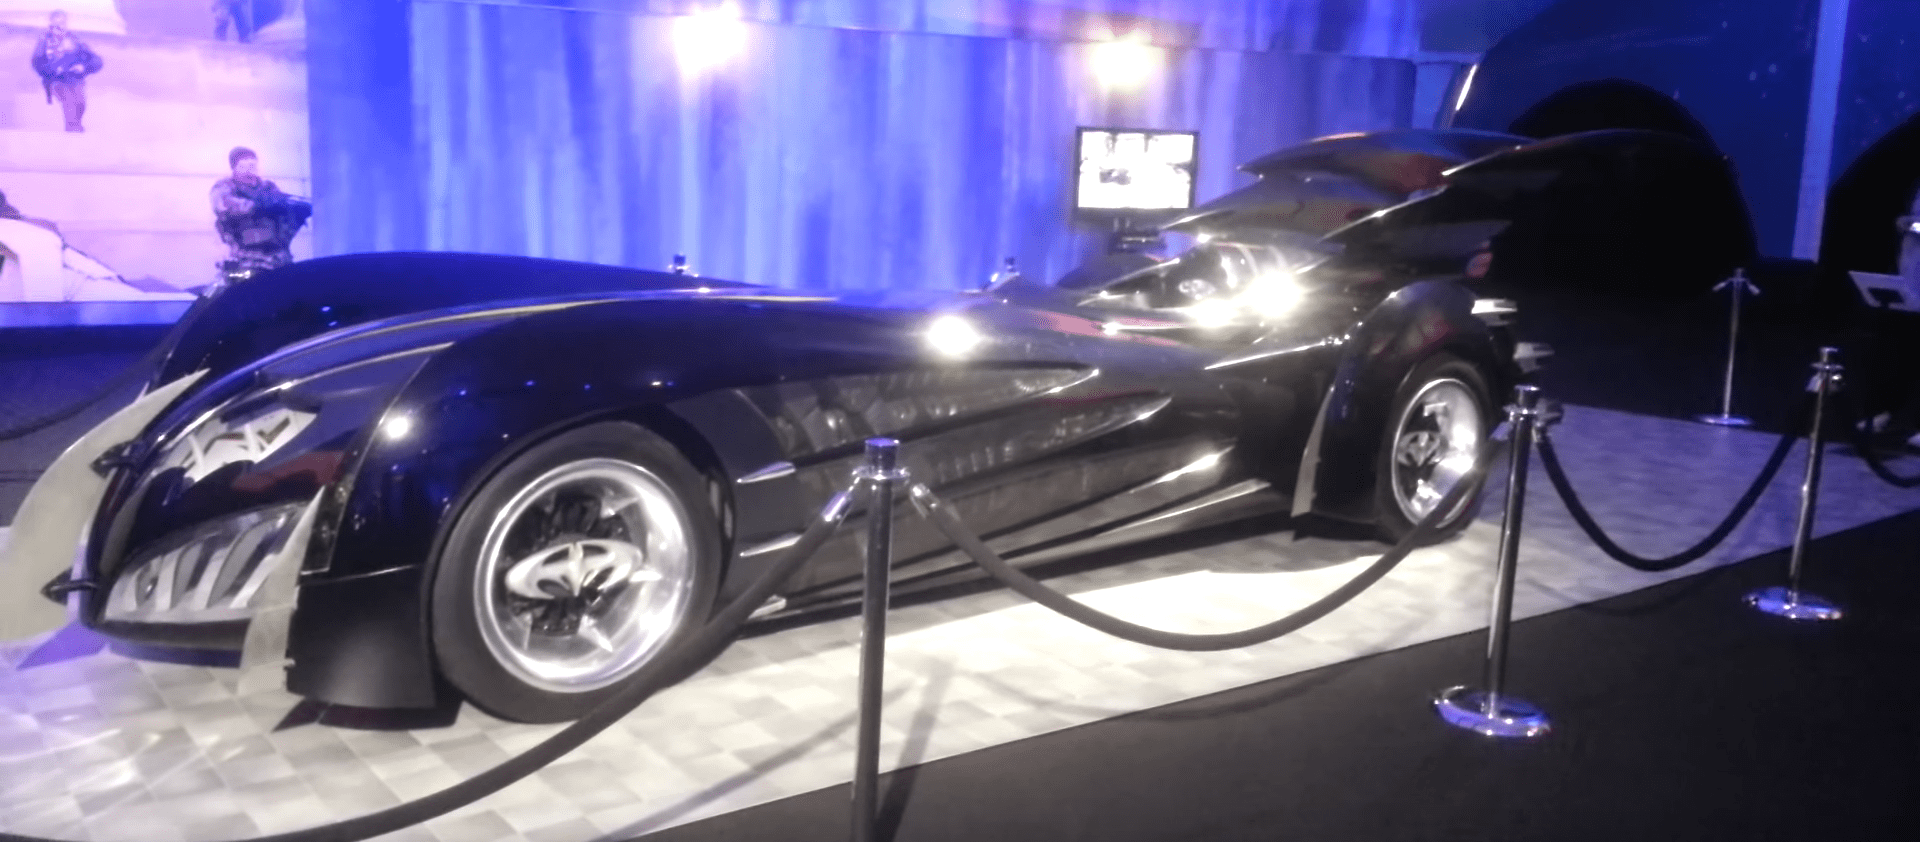 """Batman & Robin"" (1997) was panned by critics, but its Batmobile isn't the worst ever. It has a similar shape to previous live-action Batmobiles, but is black instead of the eerie blue glow of the 1995 design."